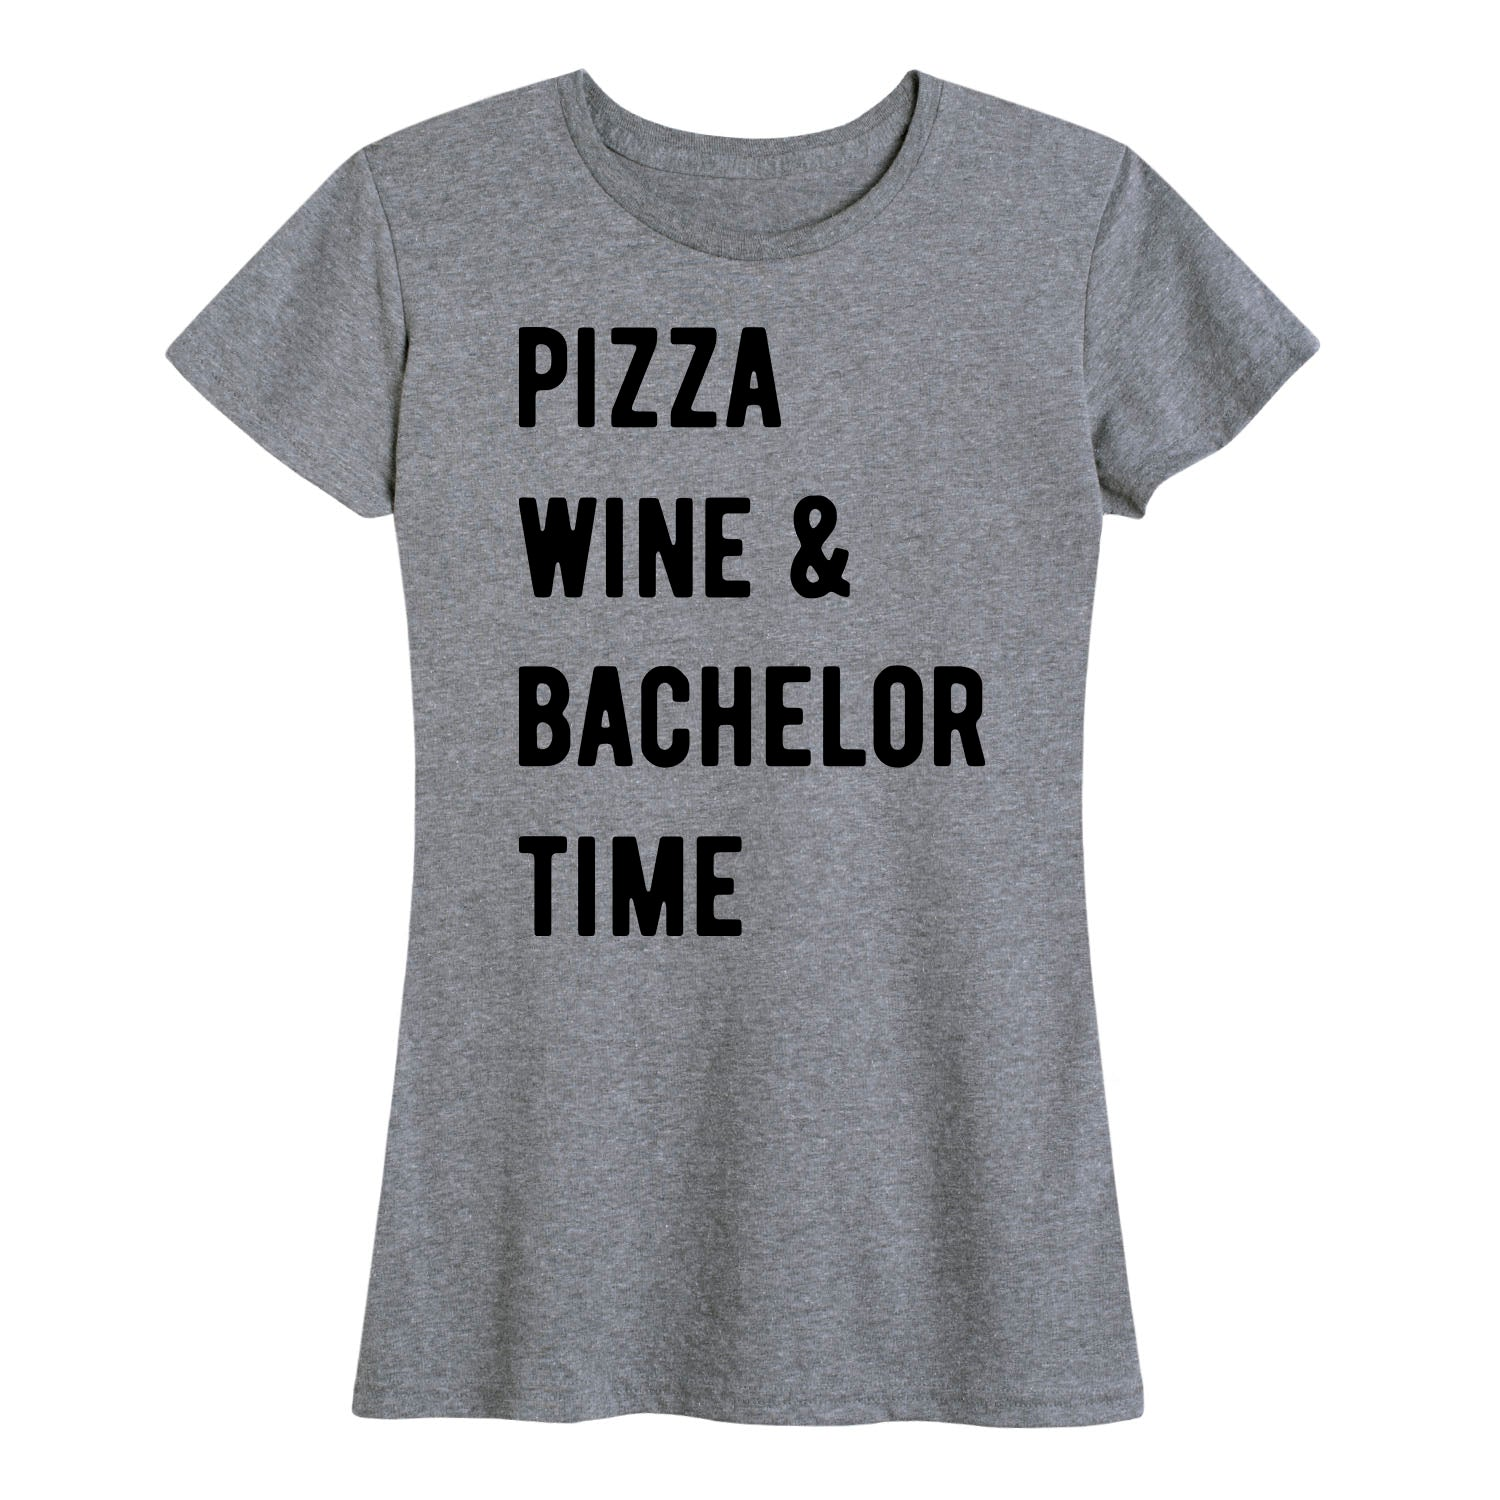 Pizza Wine and Bachelor Time - Women's Short Sleeve T-Shirt